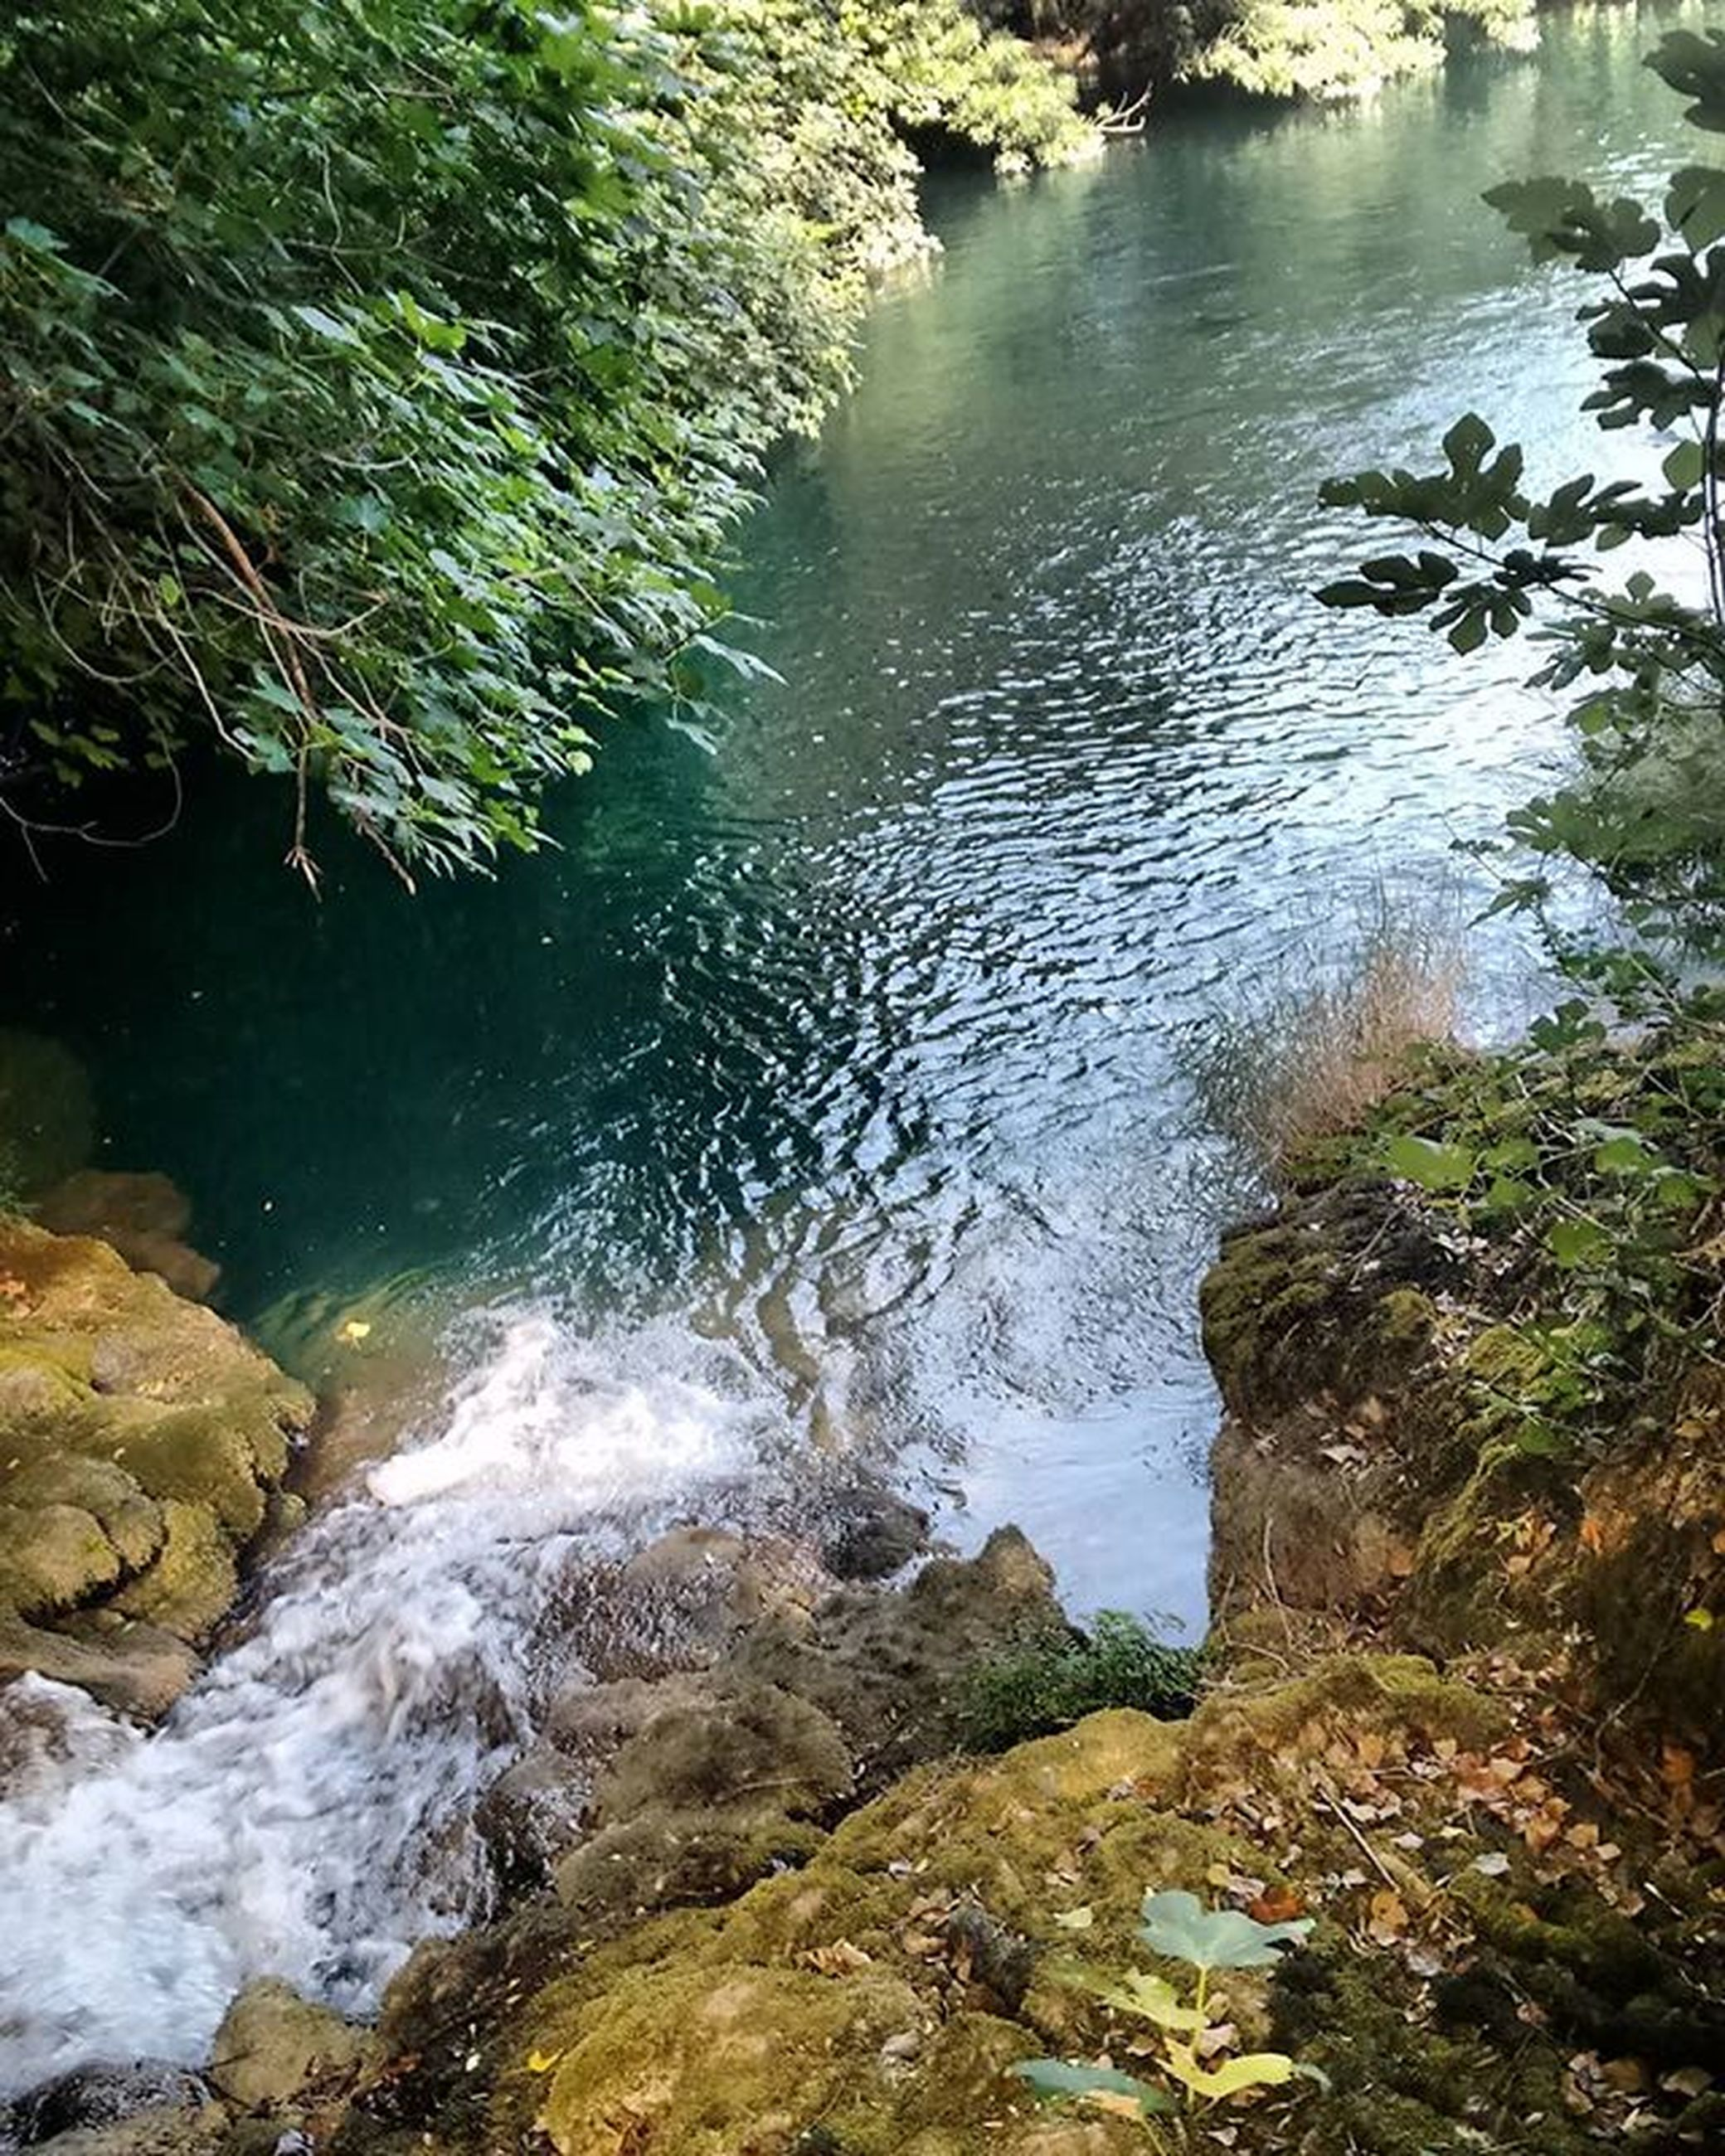 water, rock - object, nature, beauty in nature, high angle view, tranquility, river, stream, scenics, tranquil scene, tree, reflection, day, forest, outdoors, no people, growth, plant, rock, flowing water